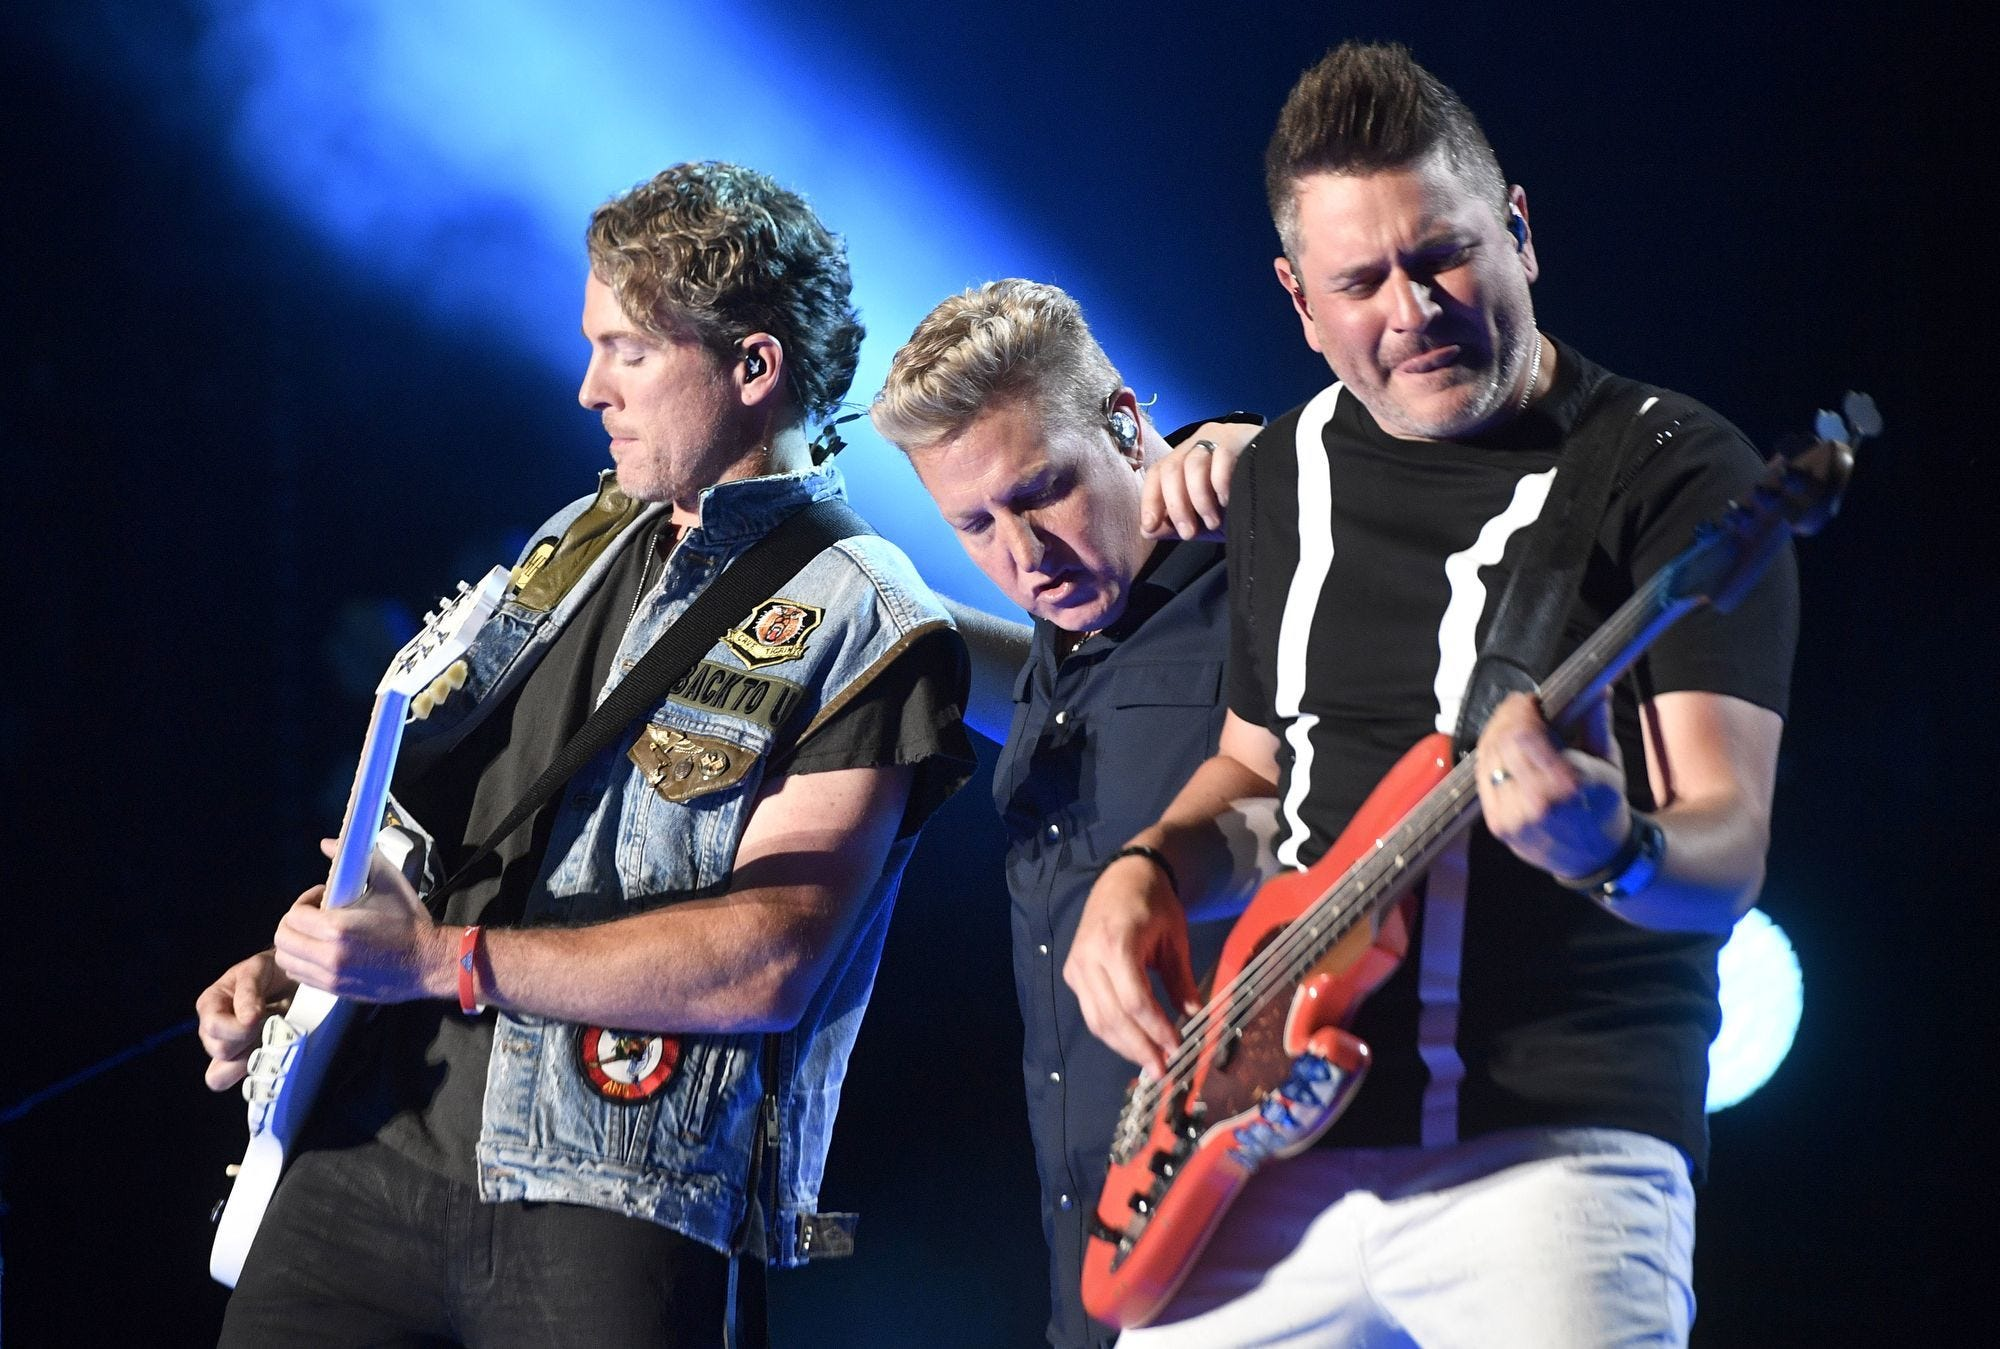 Rascal Flatts: 'Security concern' prompted abrupt end to Indianapolis show; cause unclear